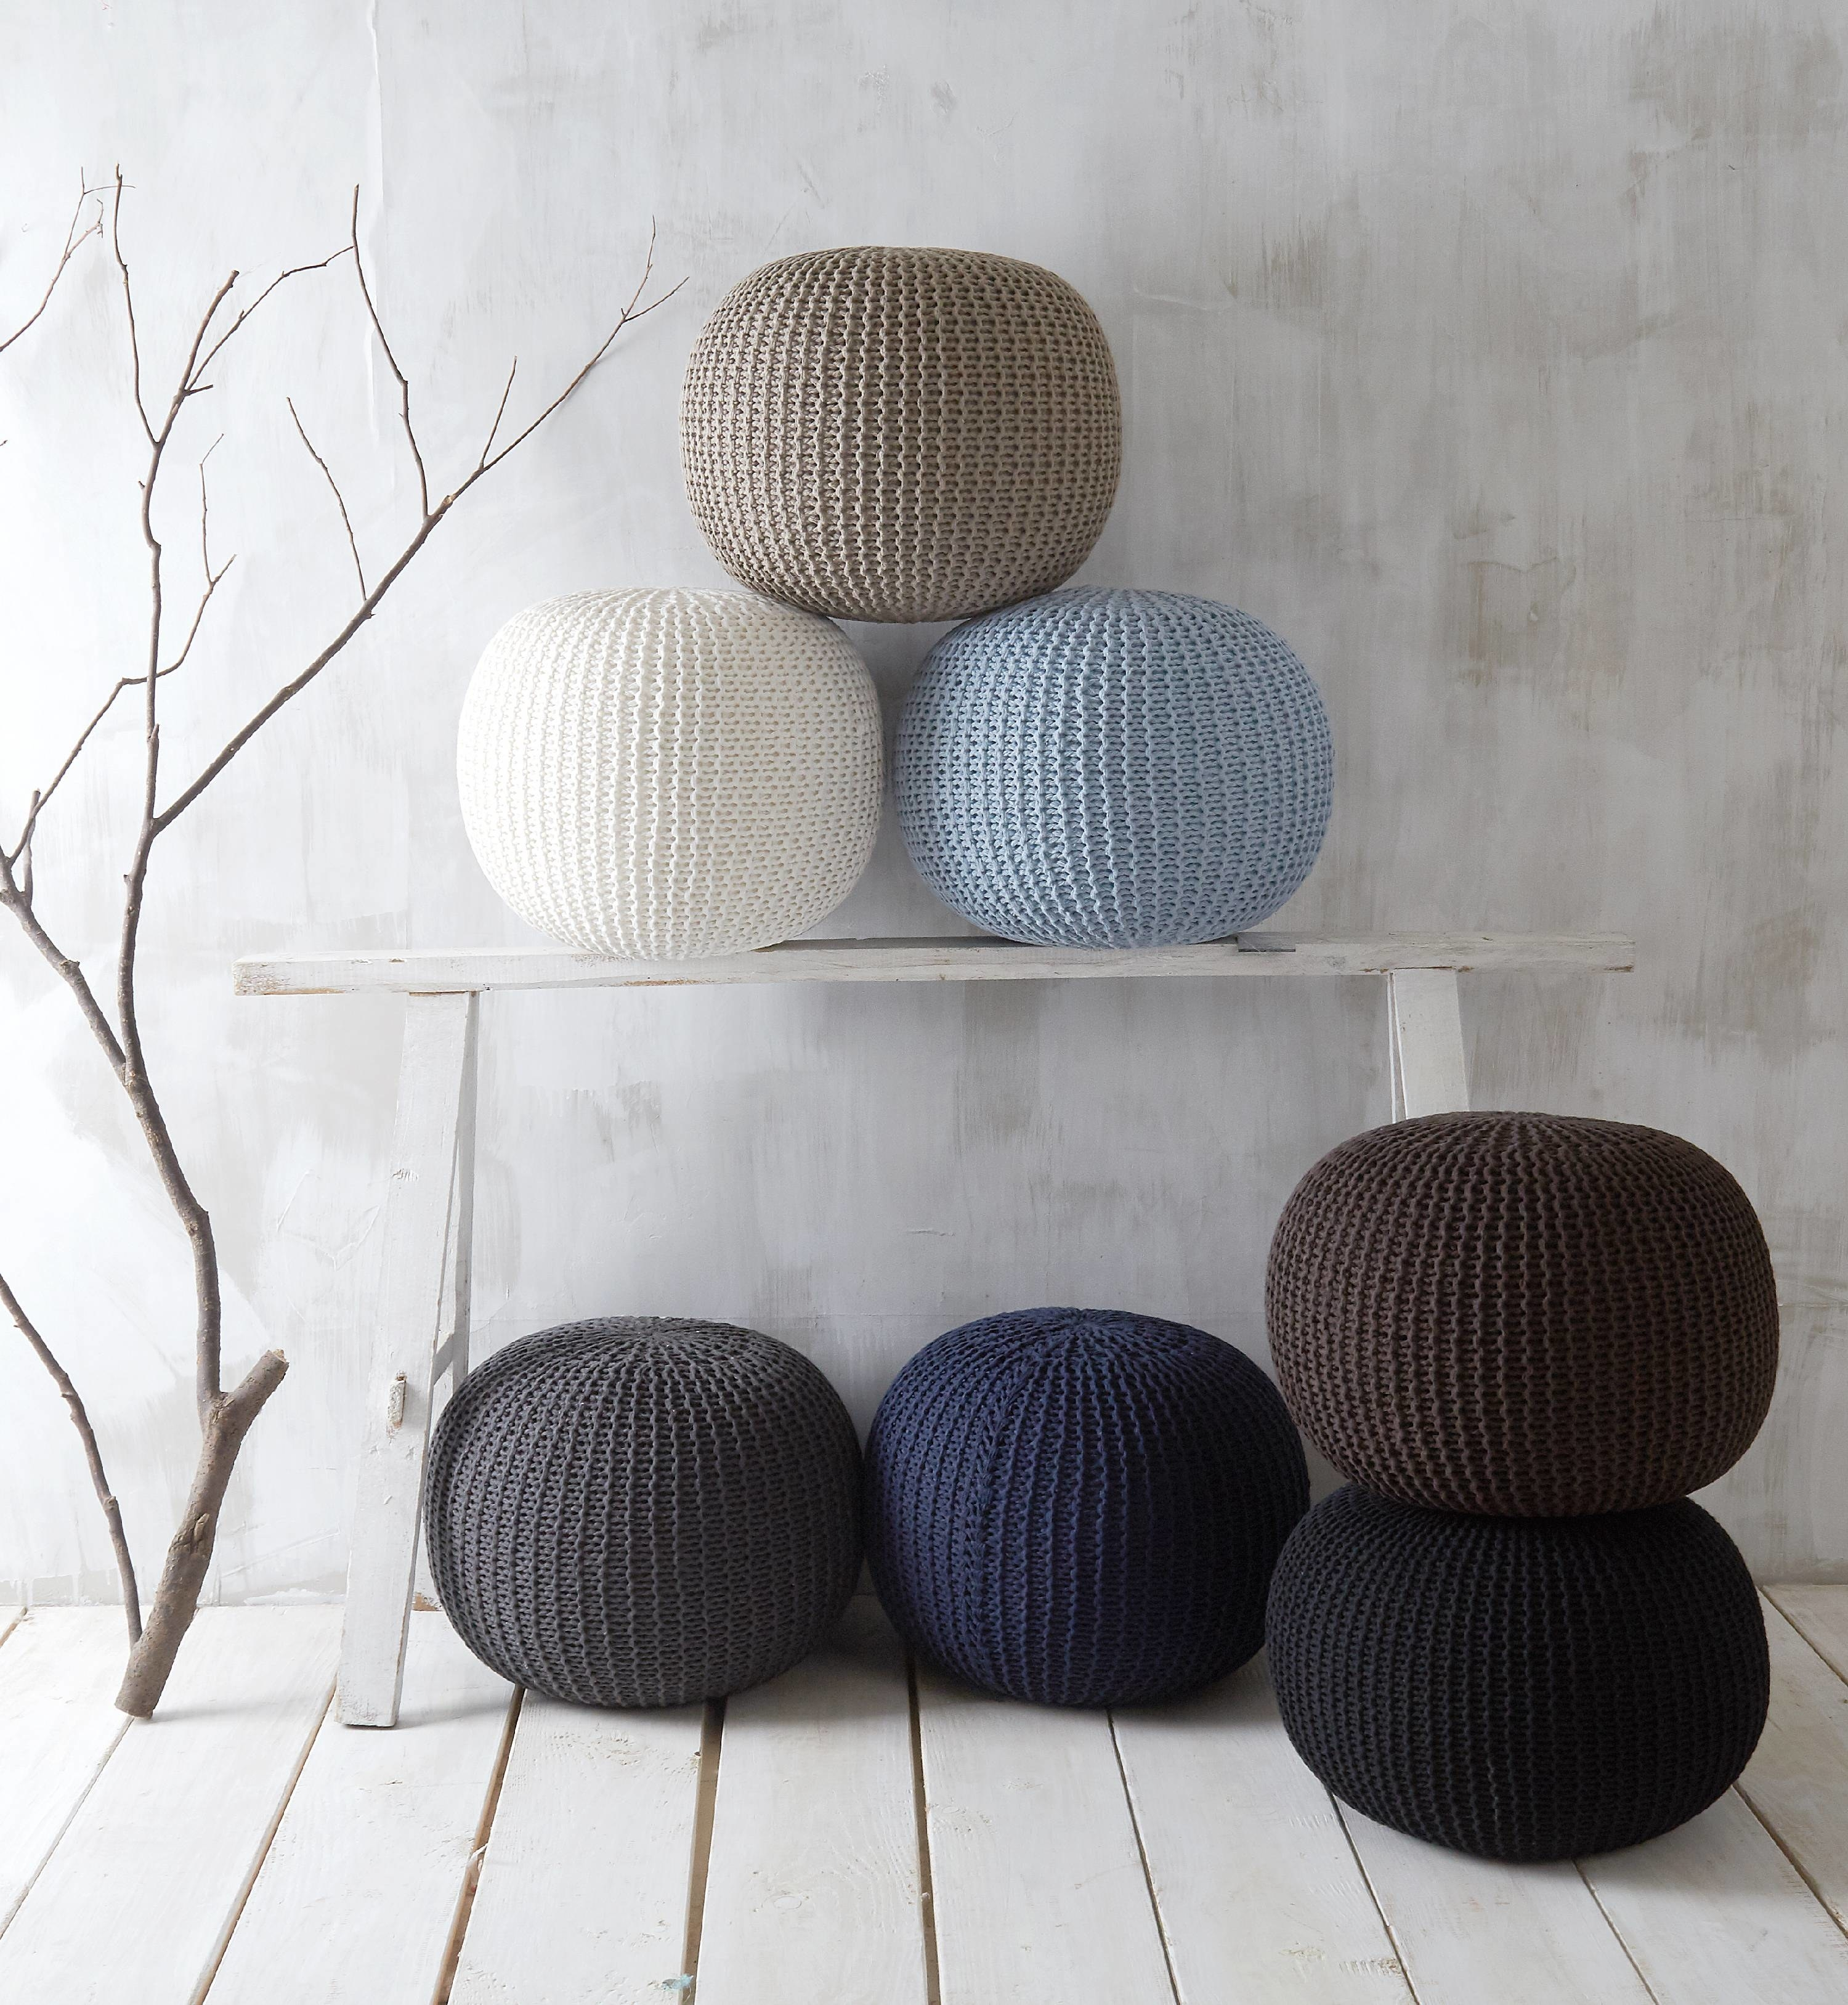 woven round pouf in hues of blue, brown, black, and white